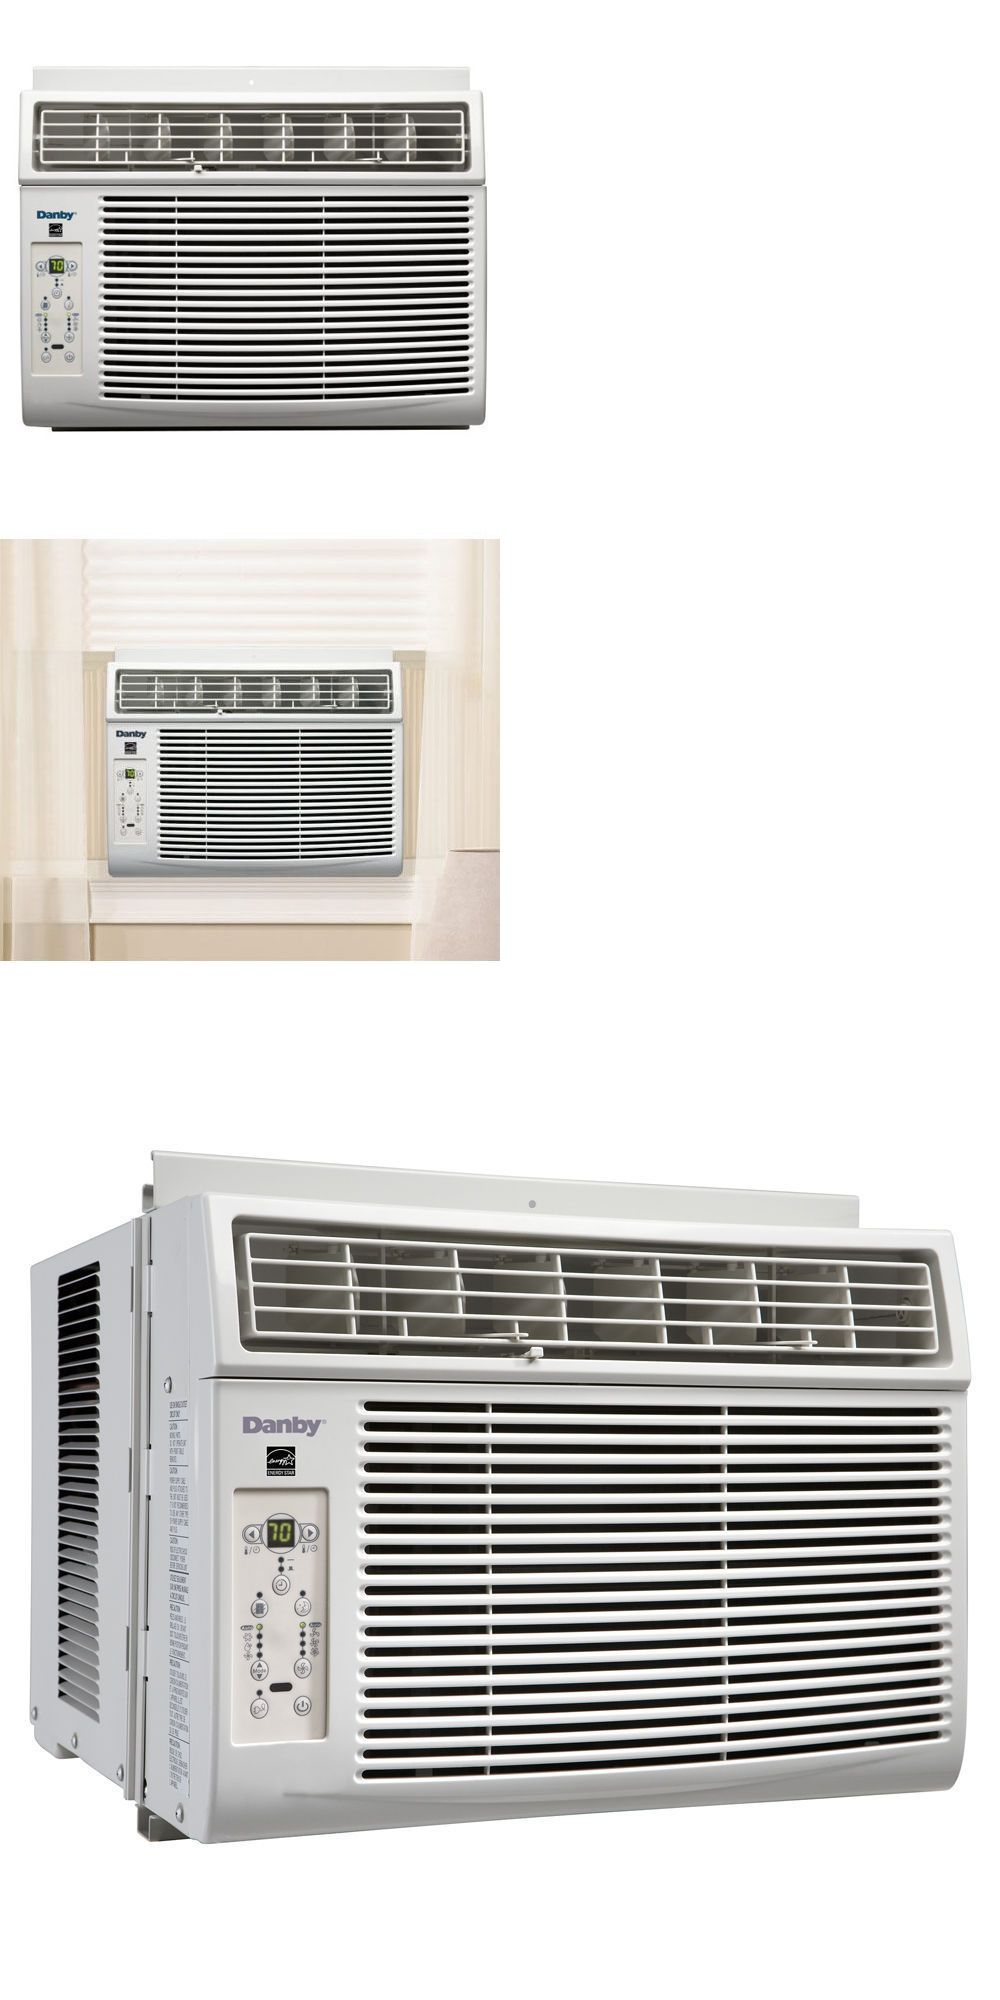 Central Air Conditioners 185108 8000btu Window Air Conditioner Cools Up To 350 Sqft W Led Dis With Images Window Air Conditioner Air Conditioner Central Air Conditioners